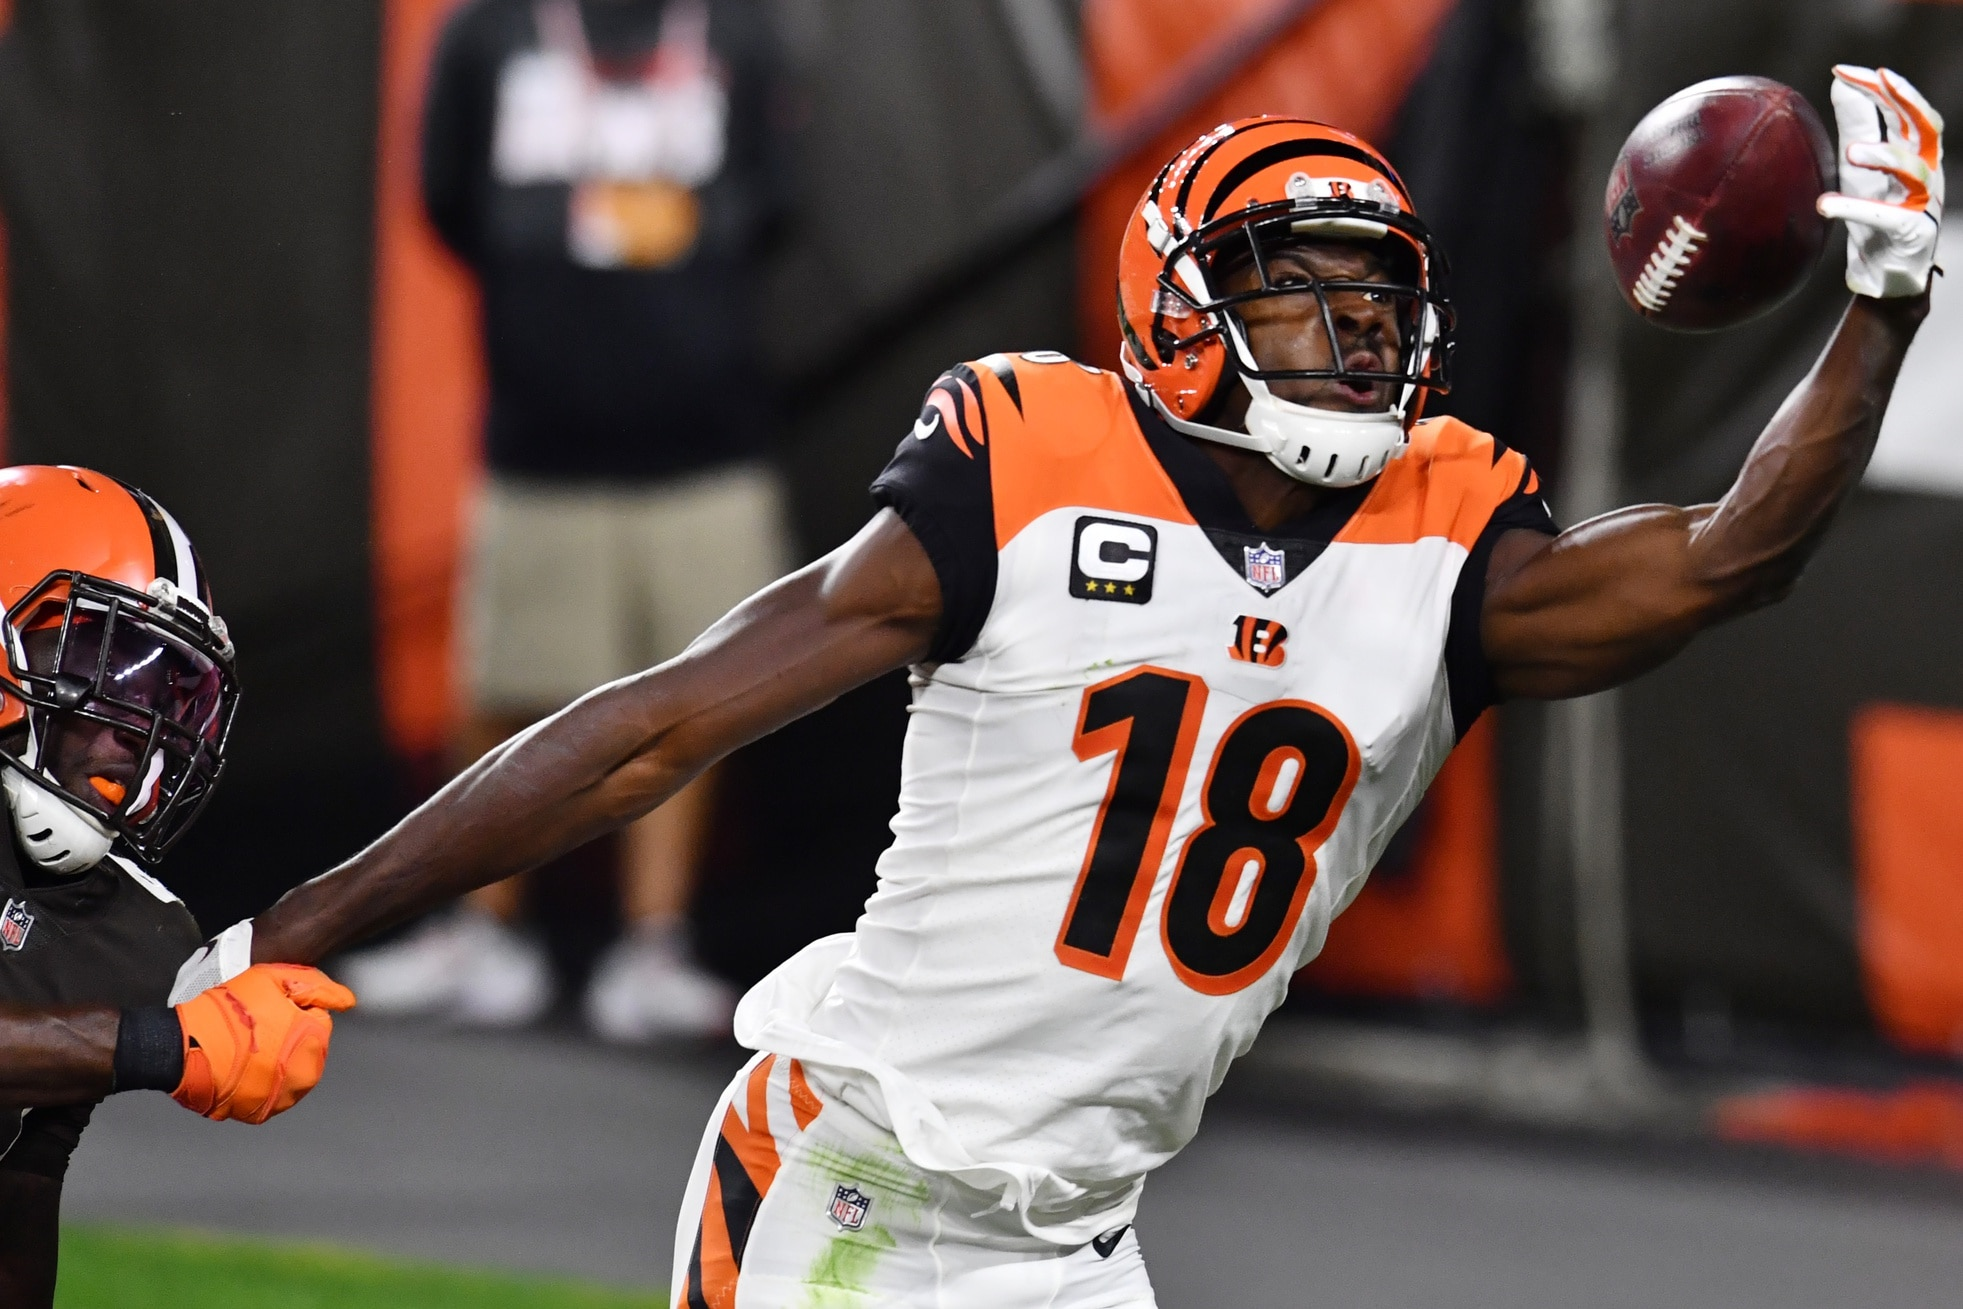 NFL trade rumors: Bengals WR A.J. Green not drawing significant interest?